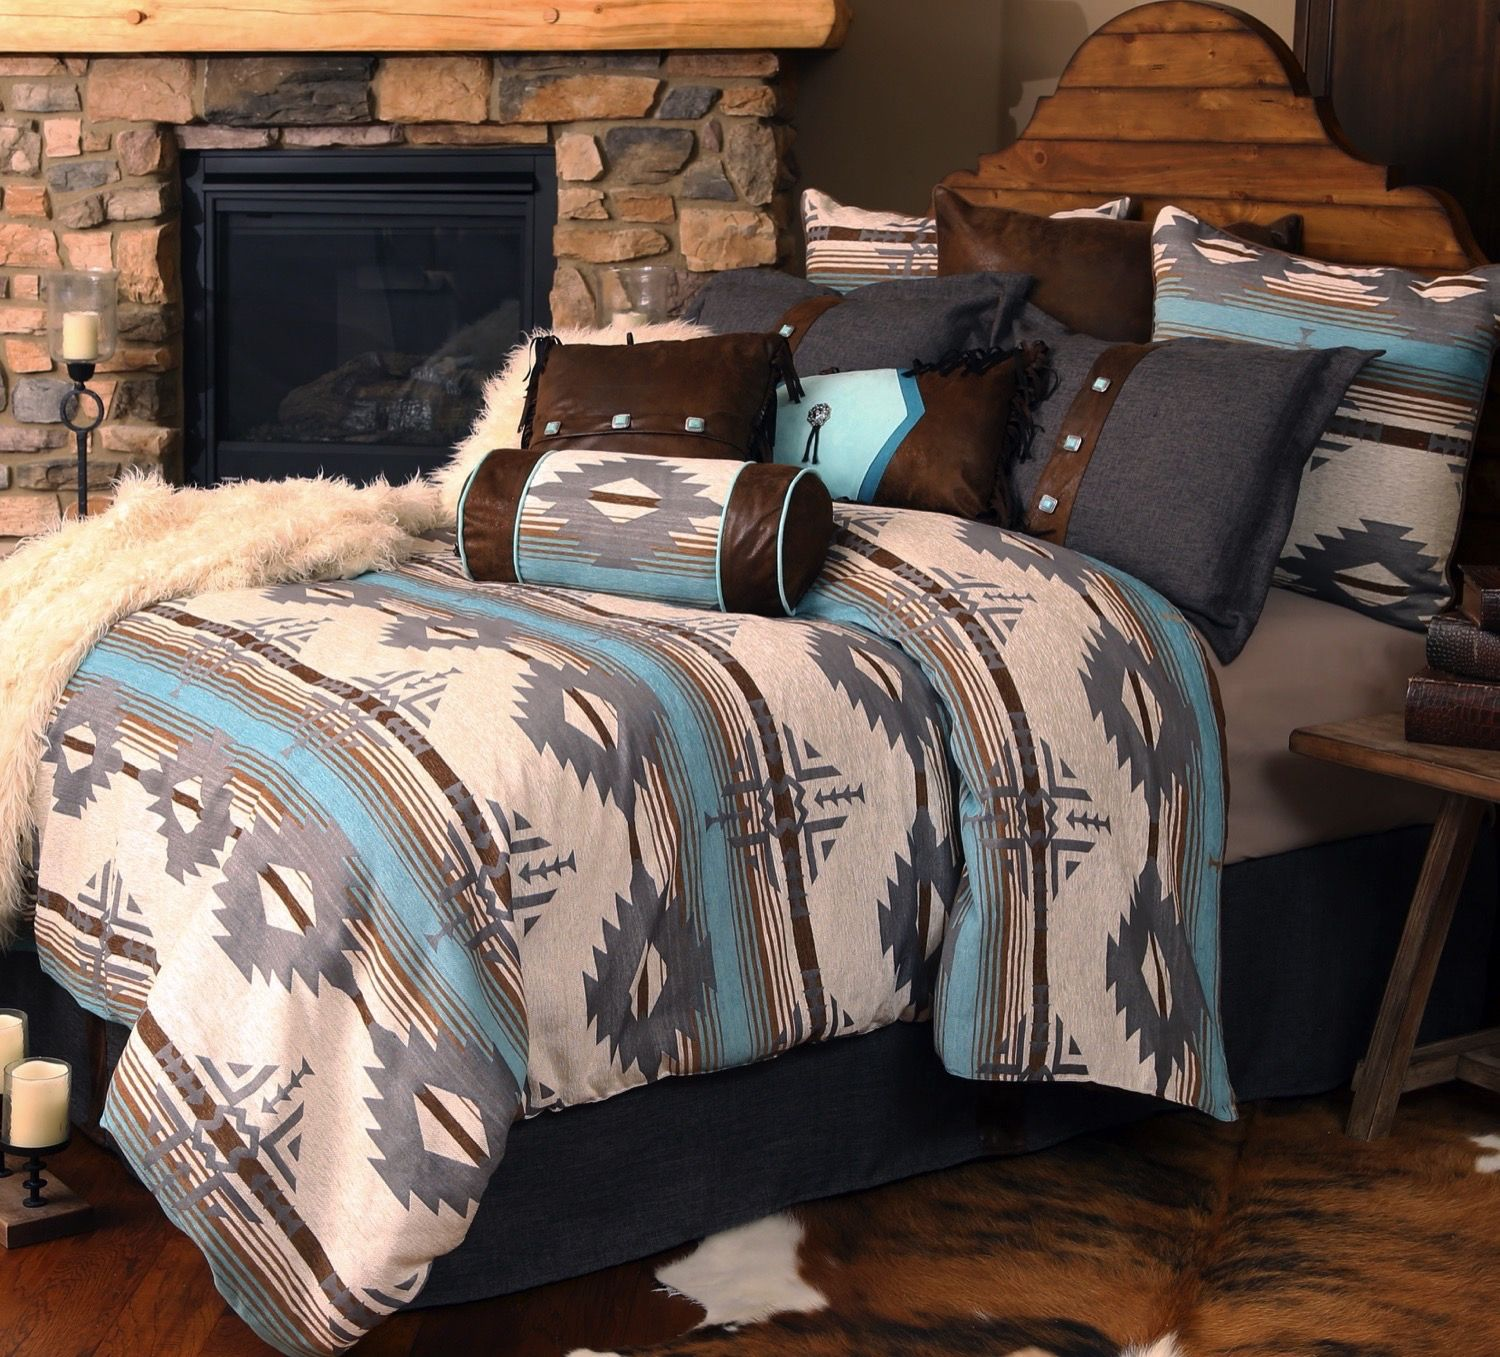 Carstens Badlands Sky Bedding   The Home Decorating Company Has The Best  Sales U0026 Prices On The Carstens Badlands Sky Bedding